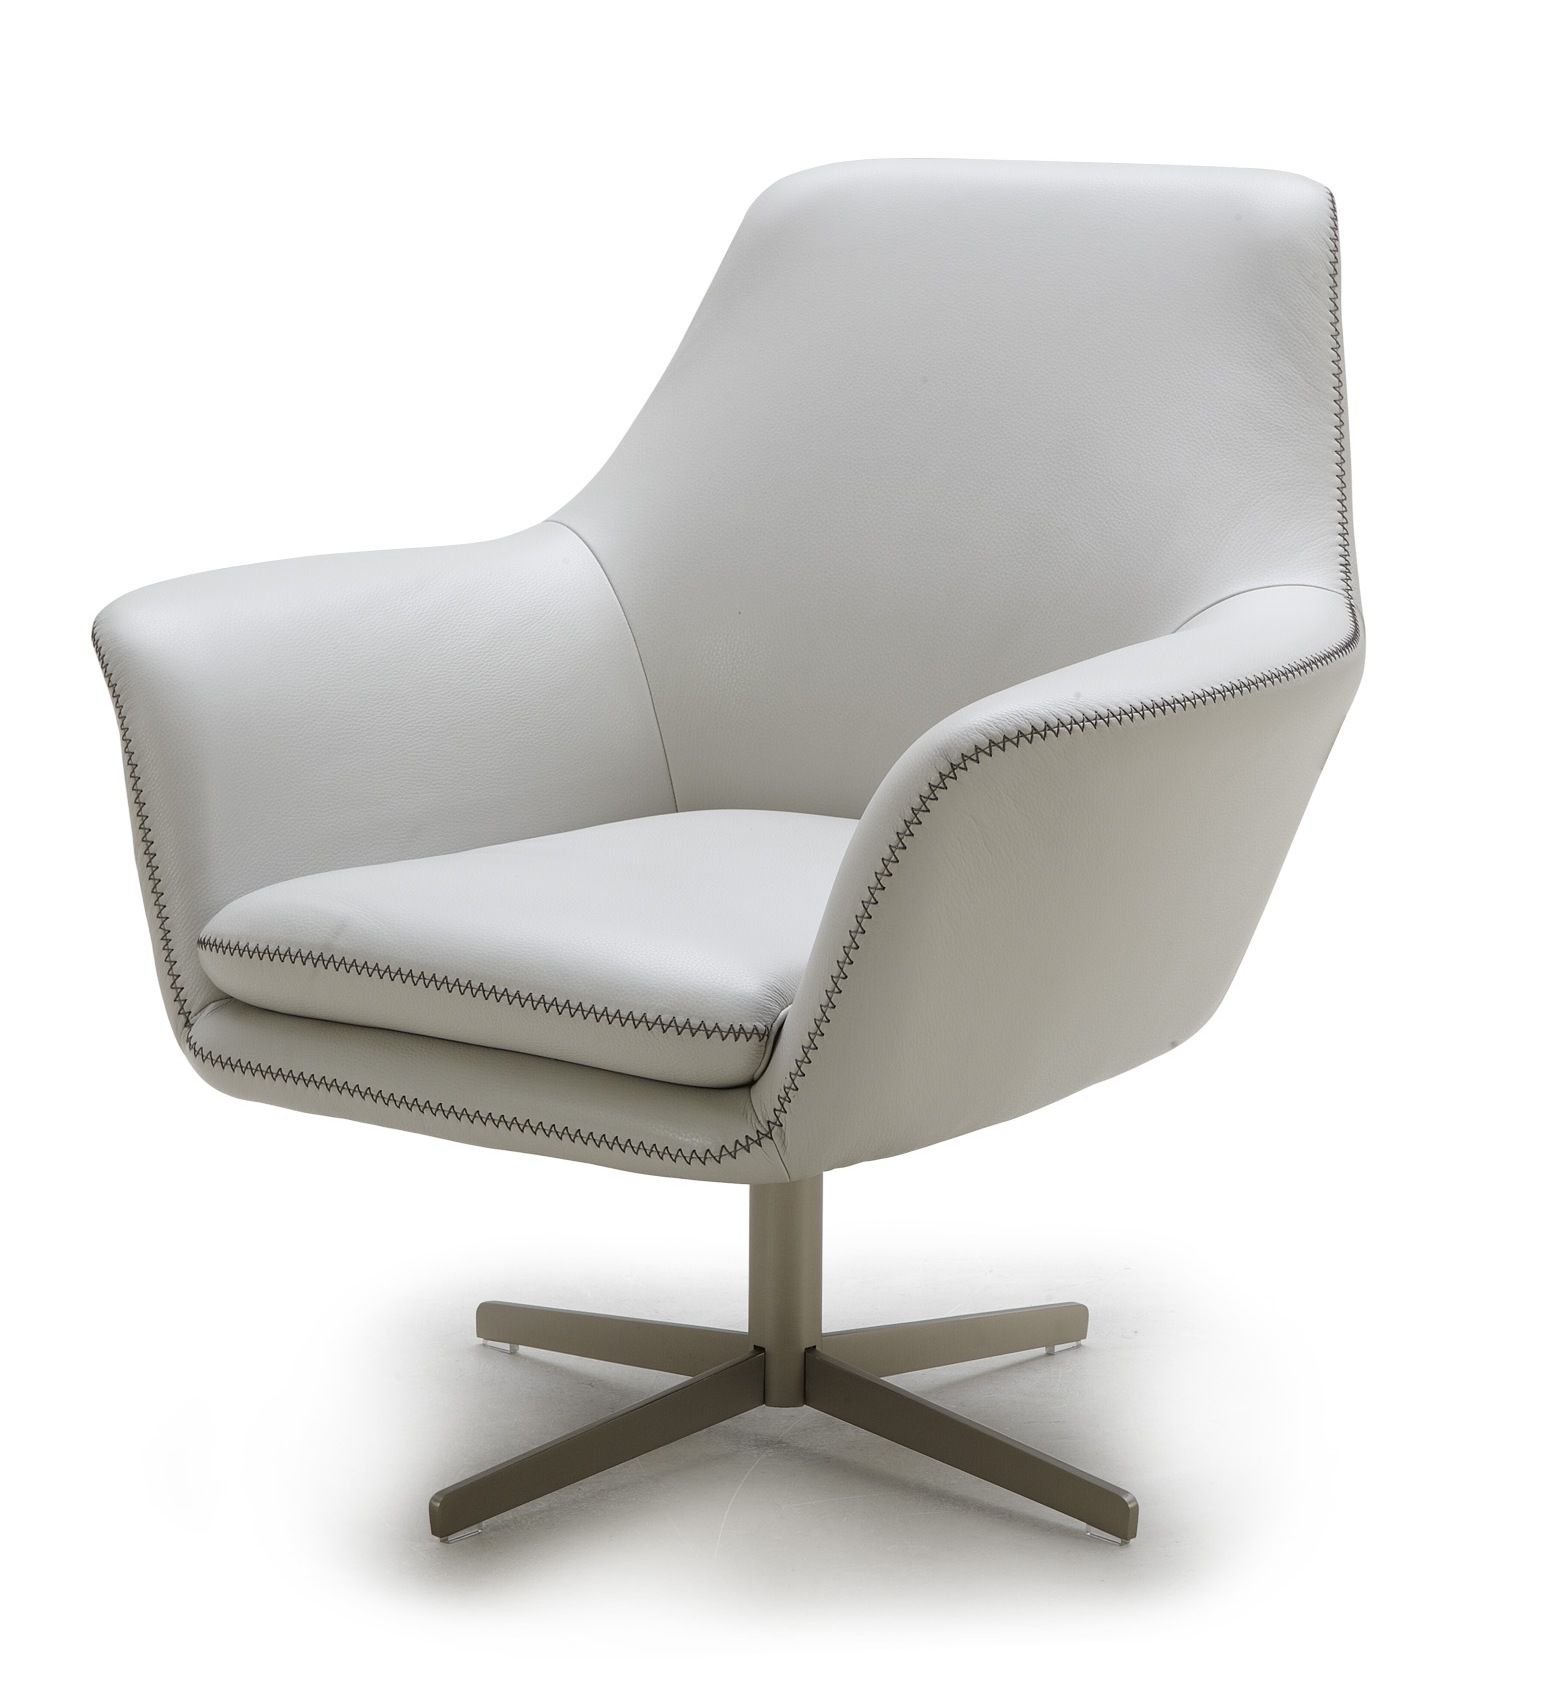 Zara Swivel Chair Slipcover Wingback Leather Lounge Has An Attractive Modern Design That Adapts To Any Space